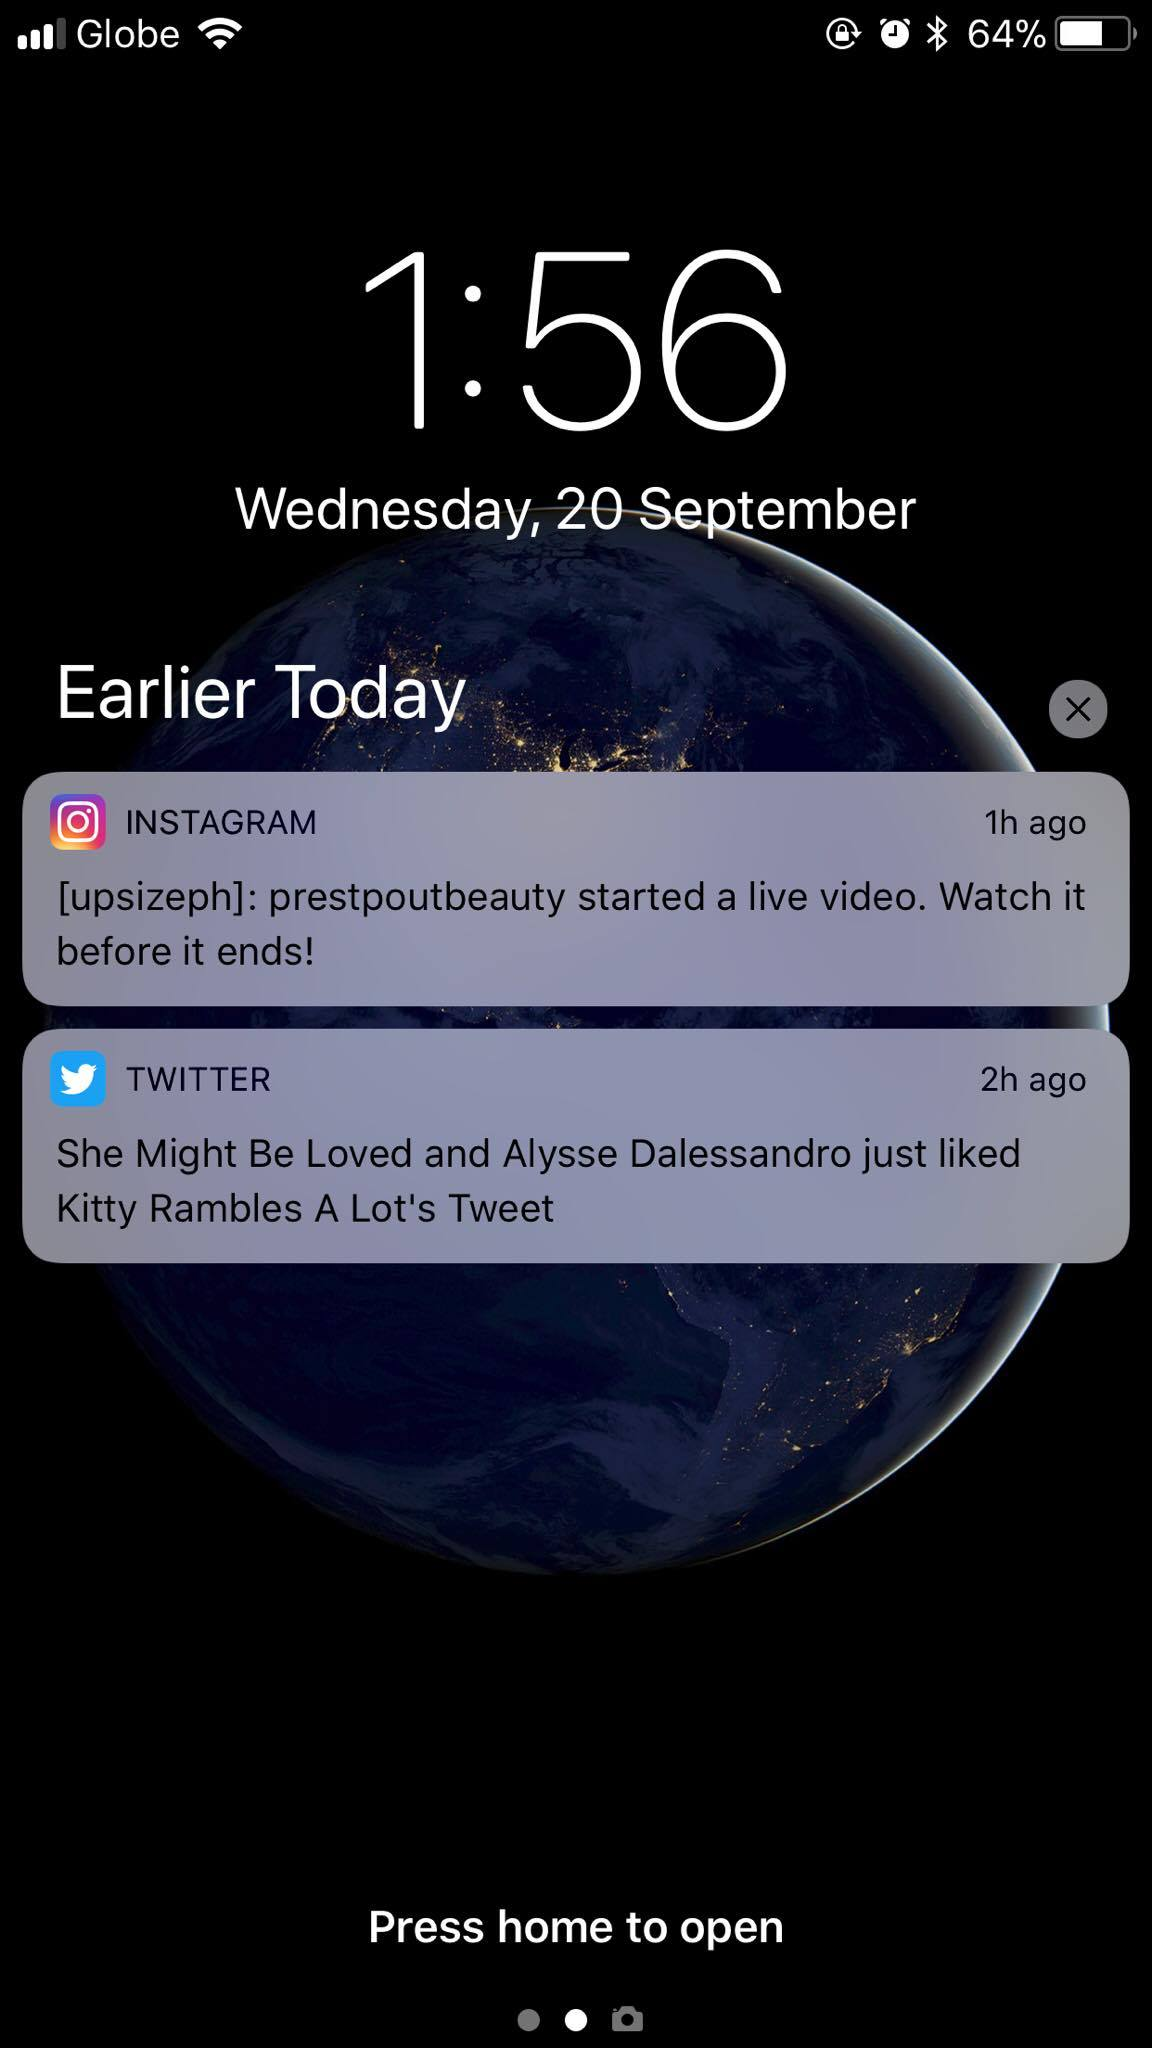 Can't imagine how this would look like on the regular days when we have literally thousands of notifications.